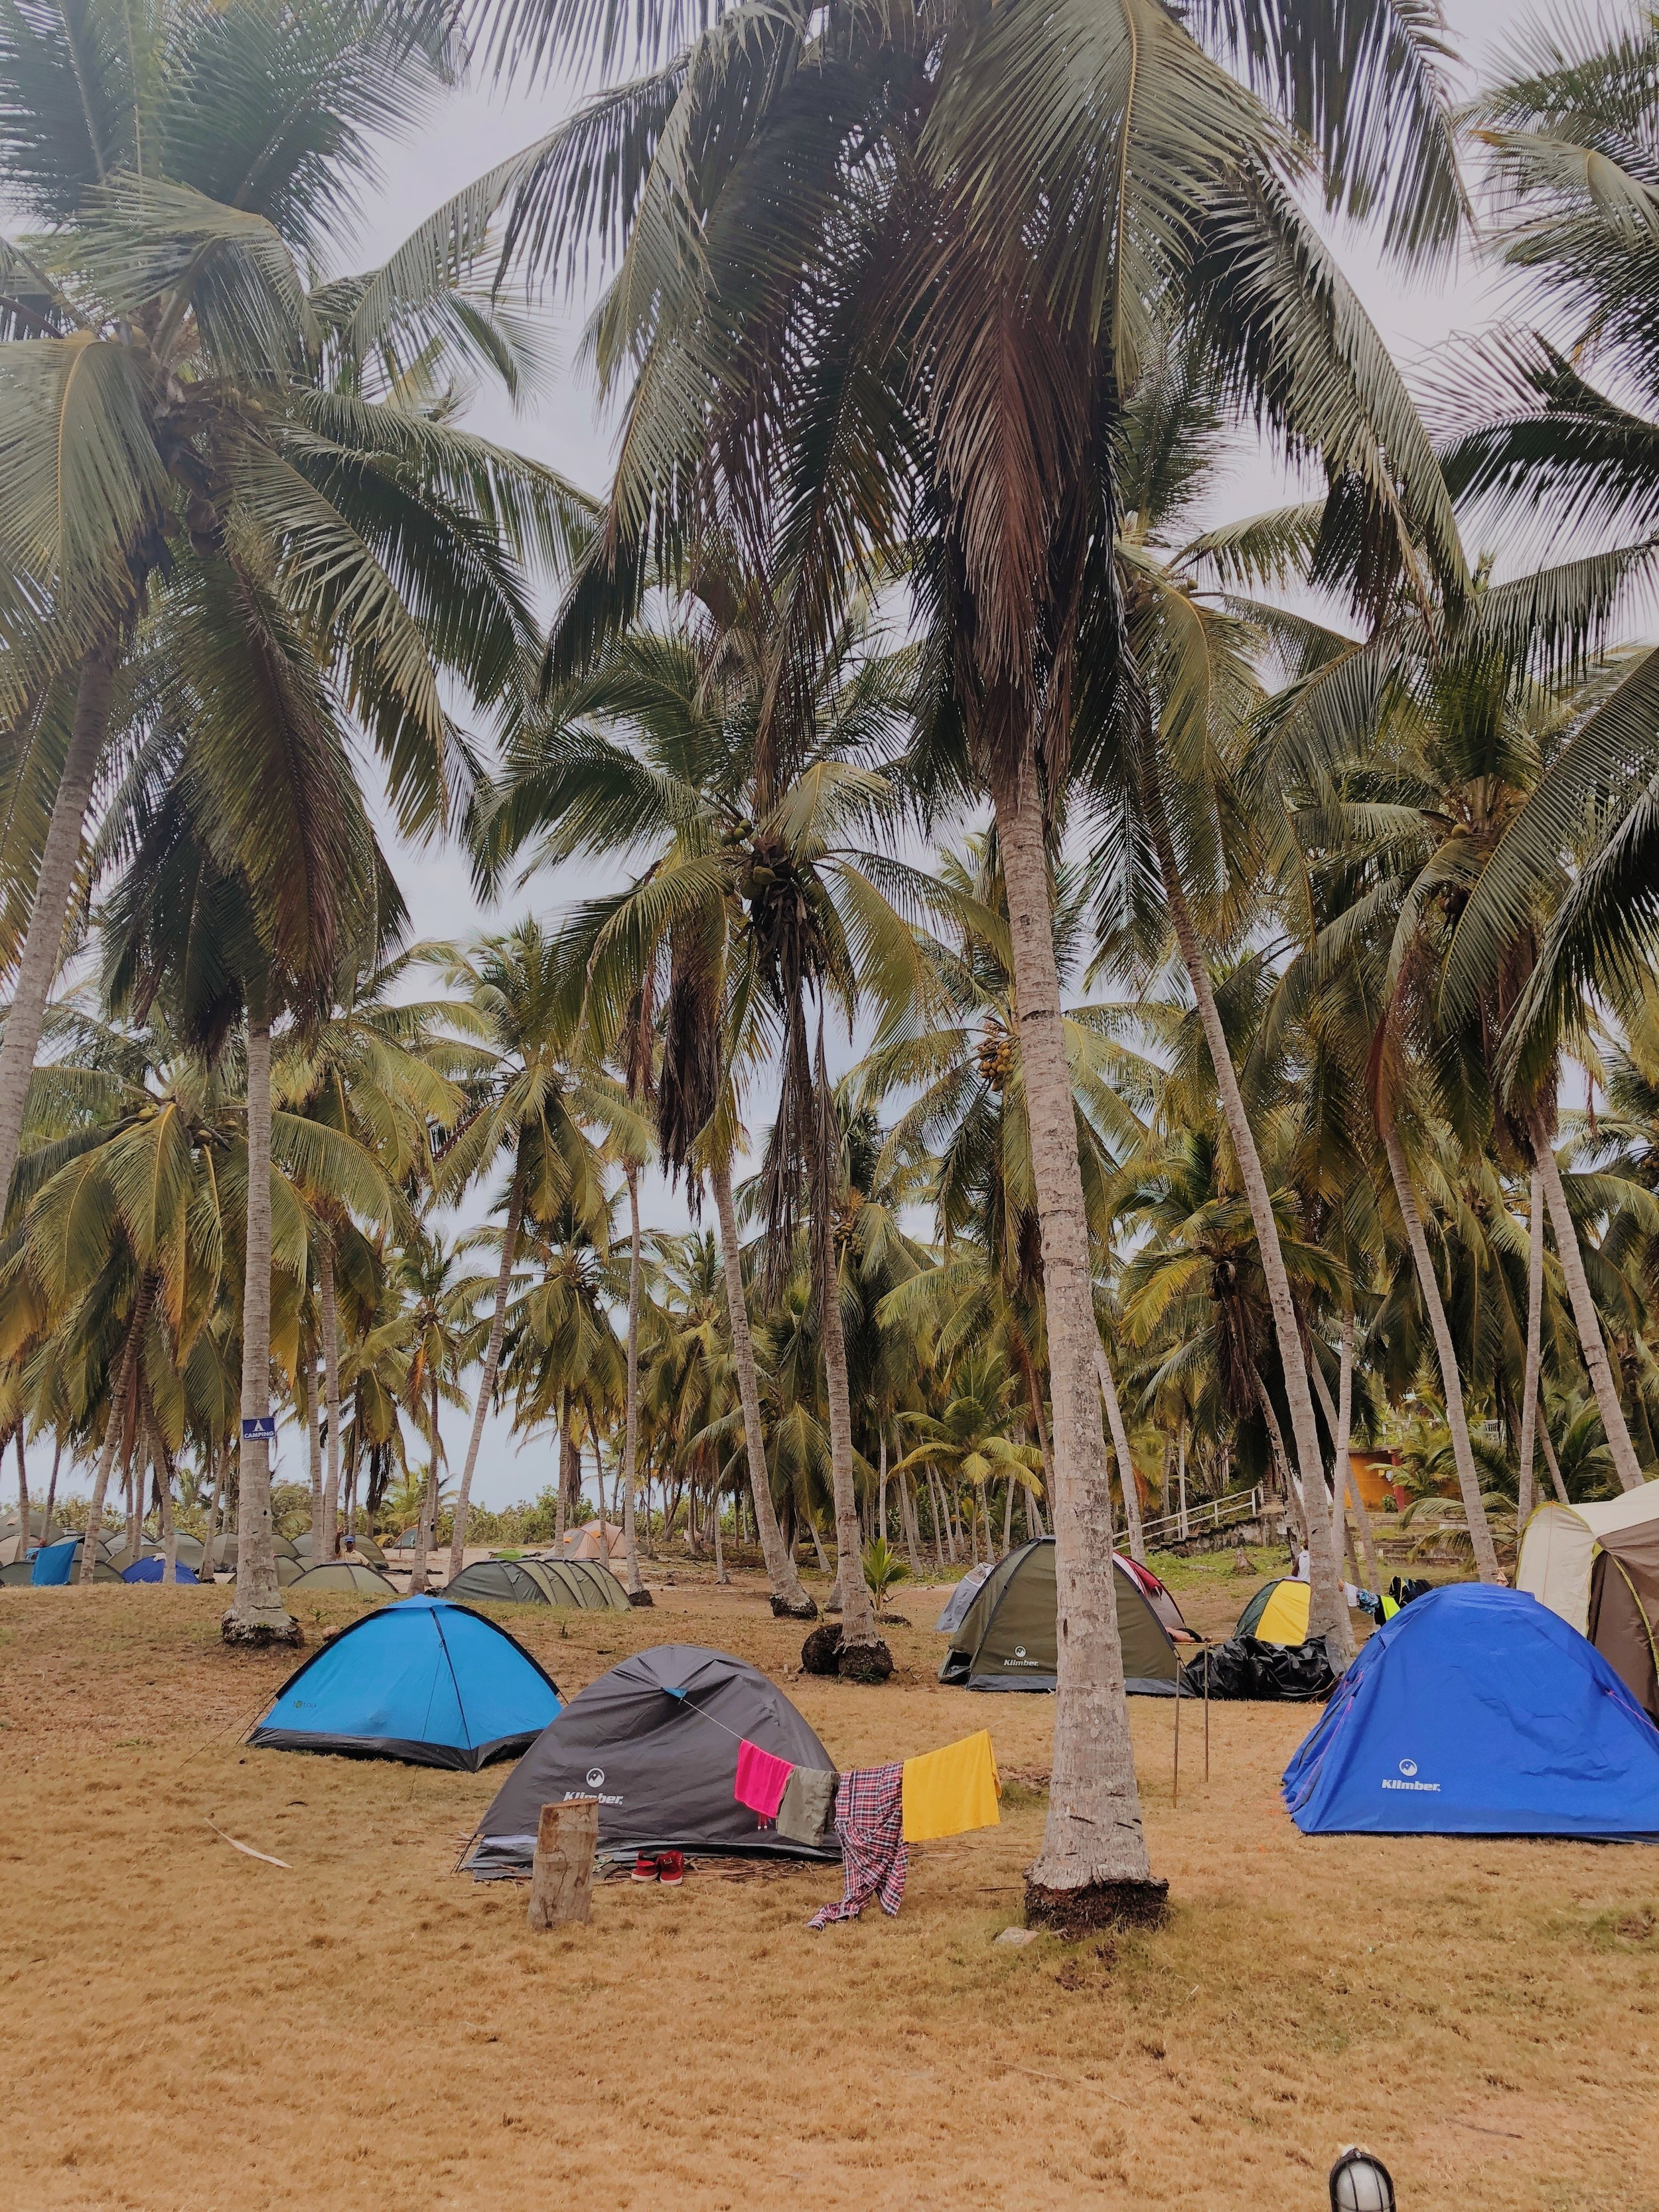 Camping Grounds in Tayrona